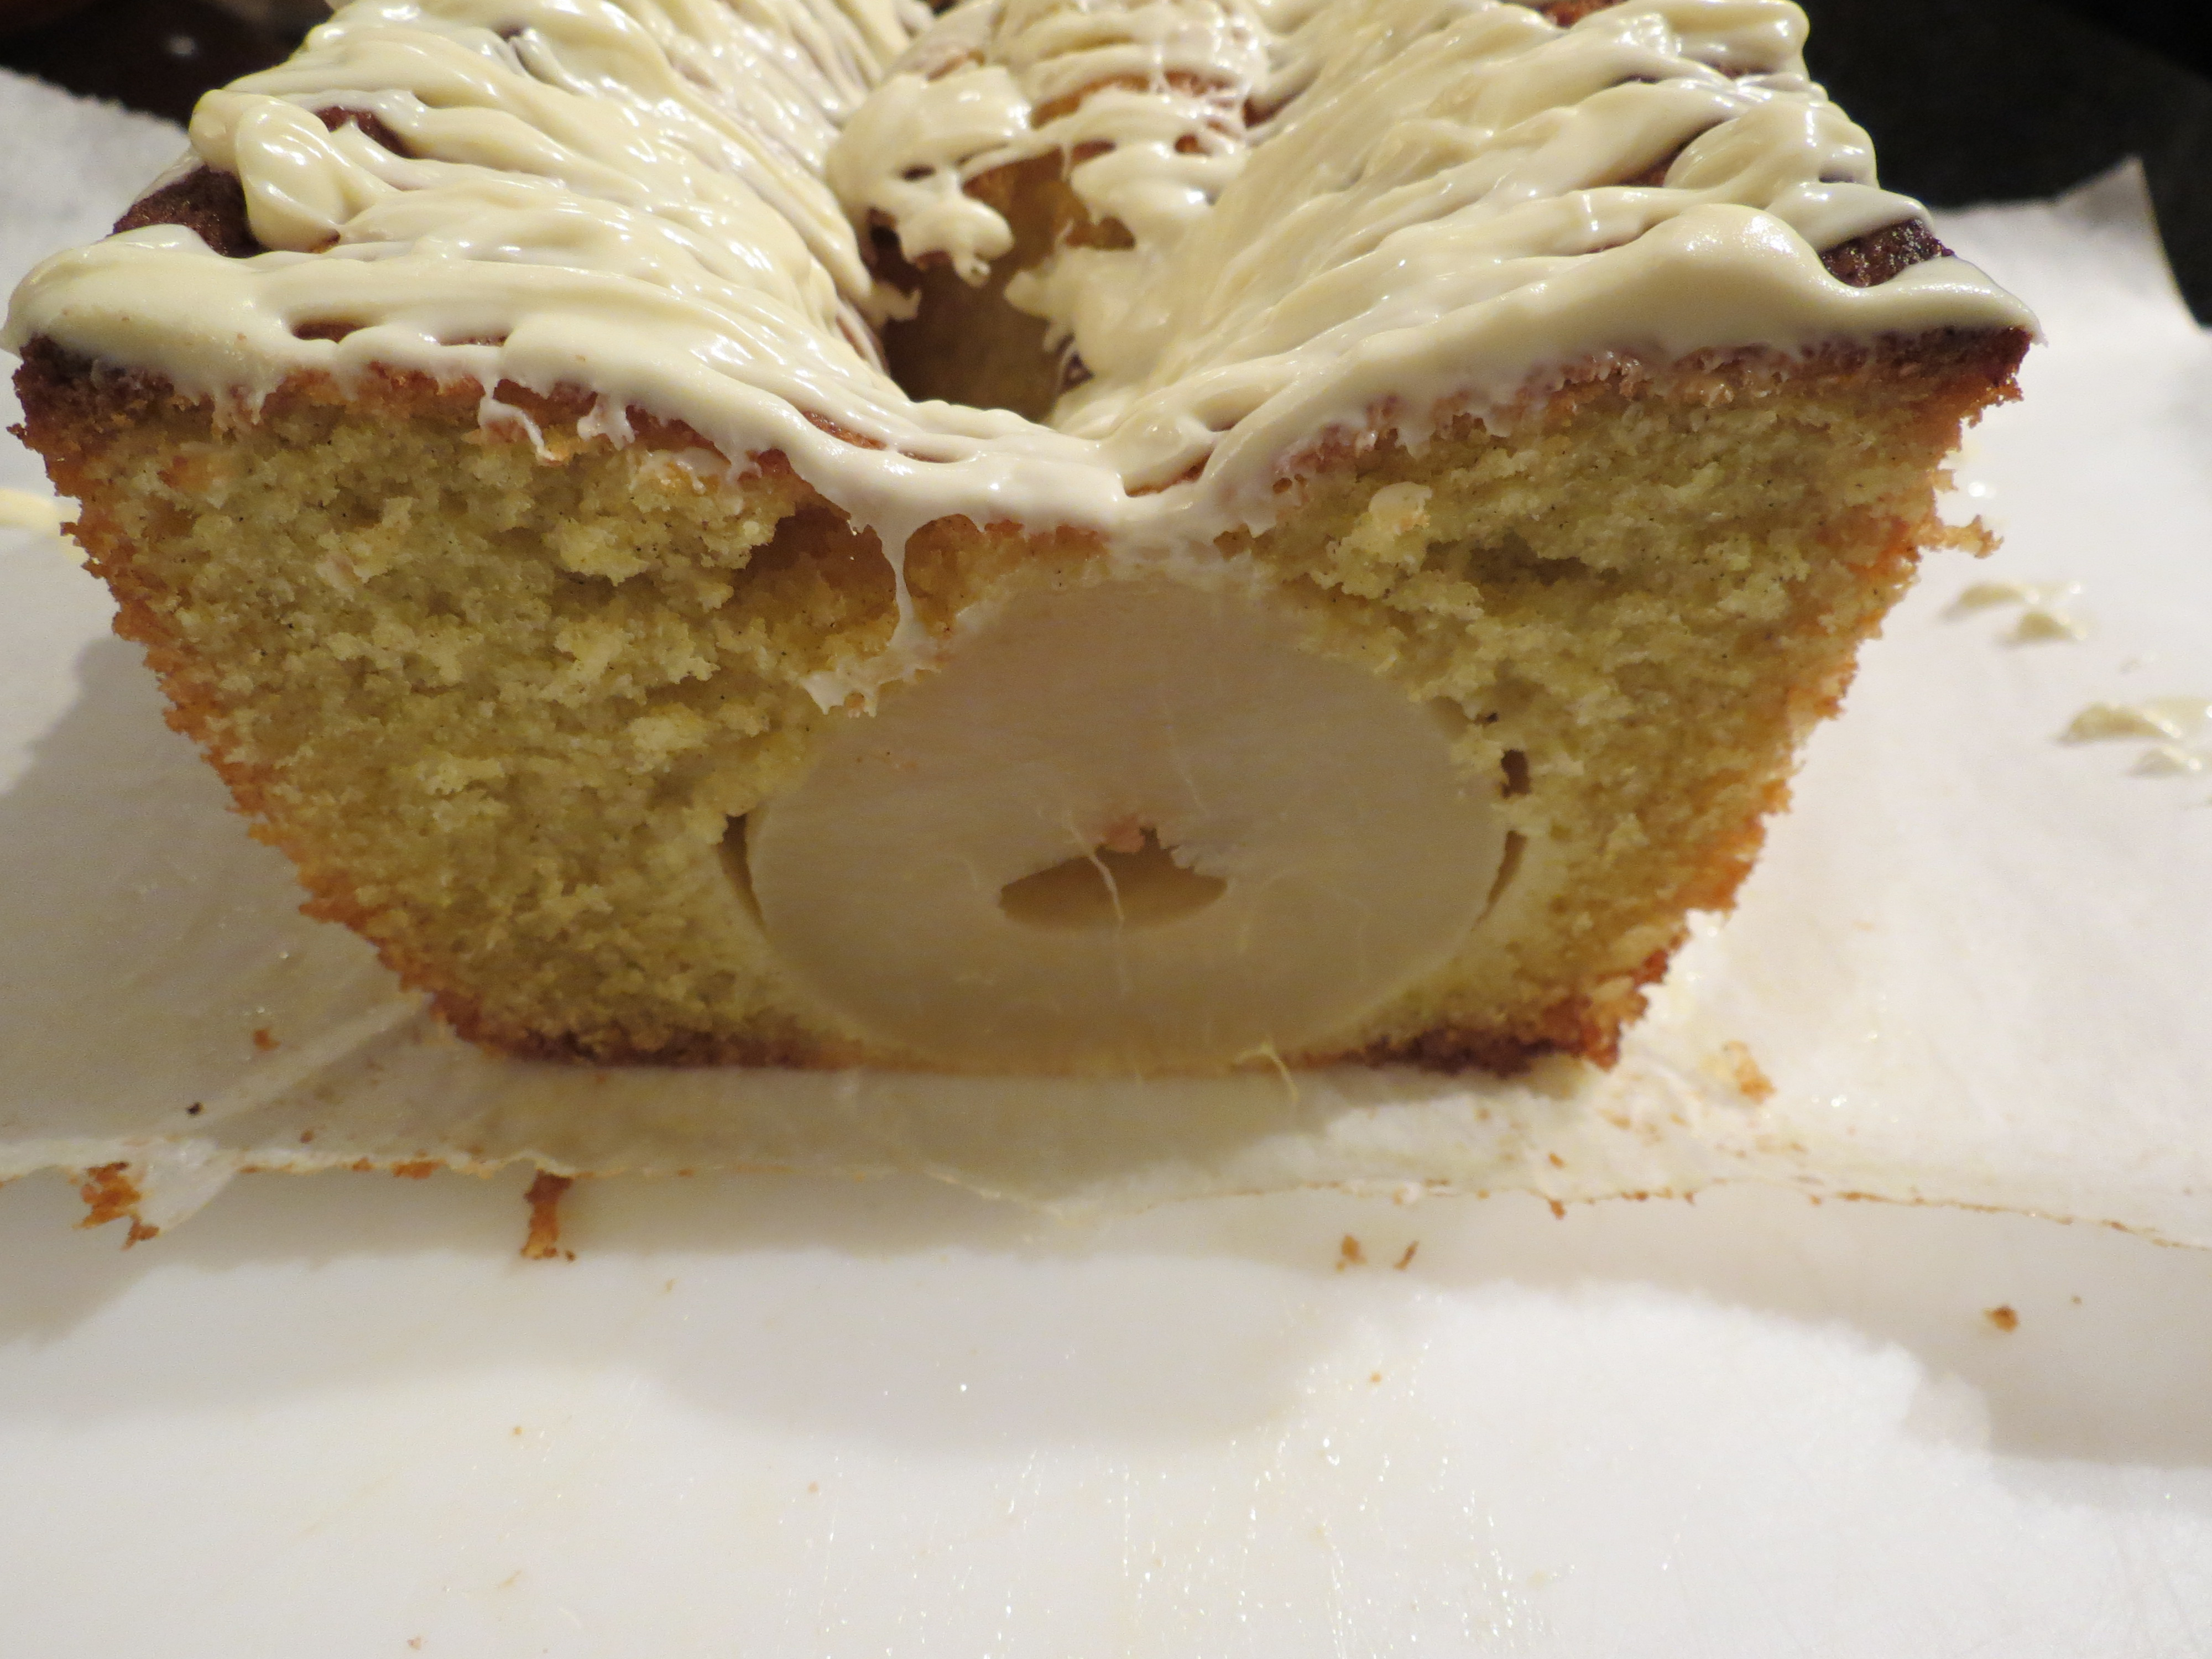 Cardamom Cake with Whole Pears and White Chocolate